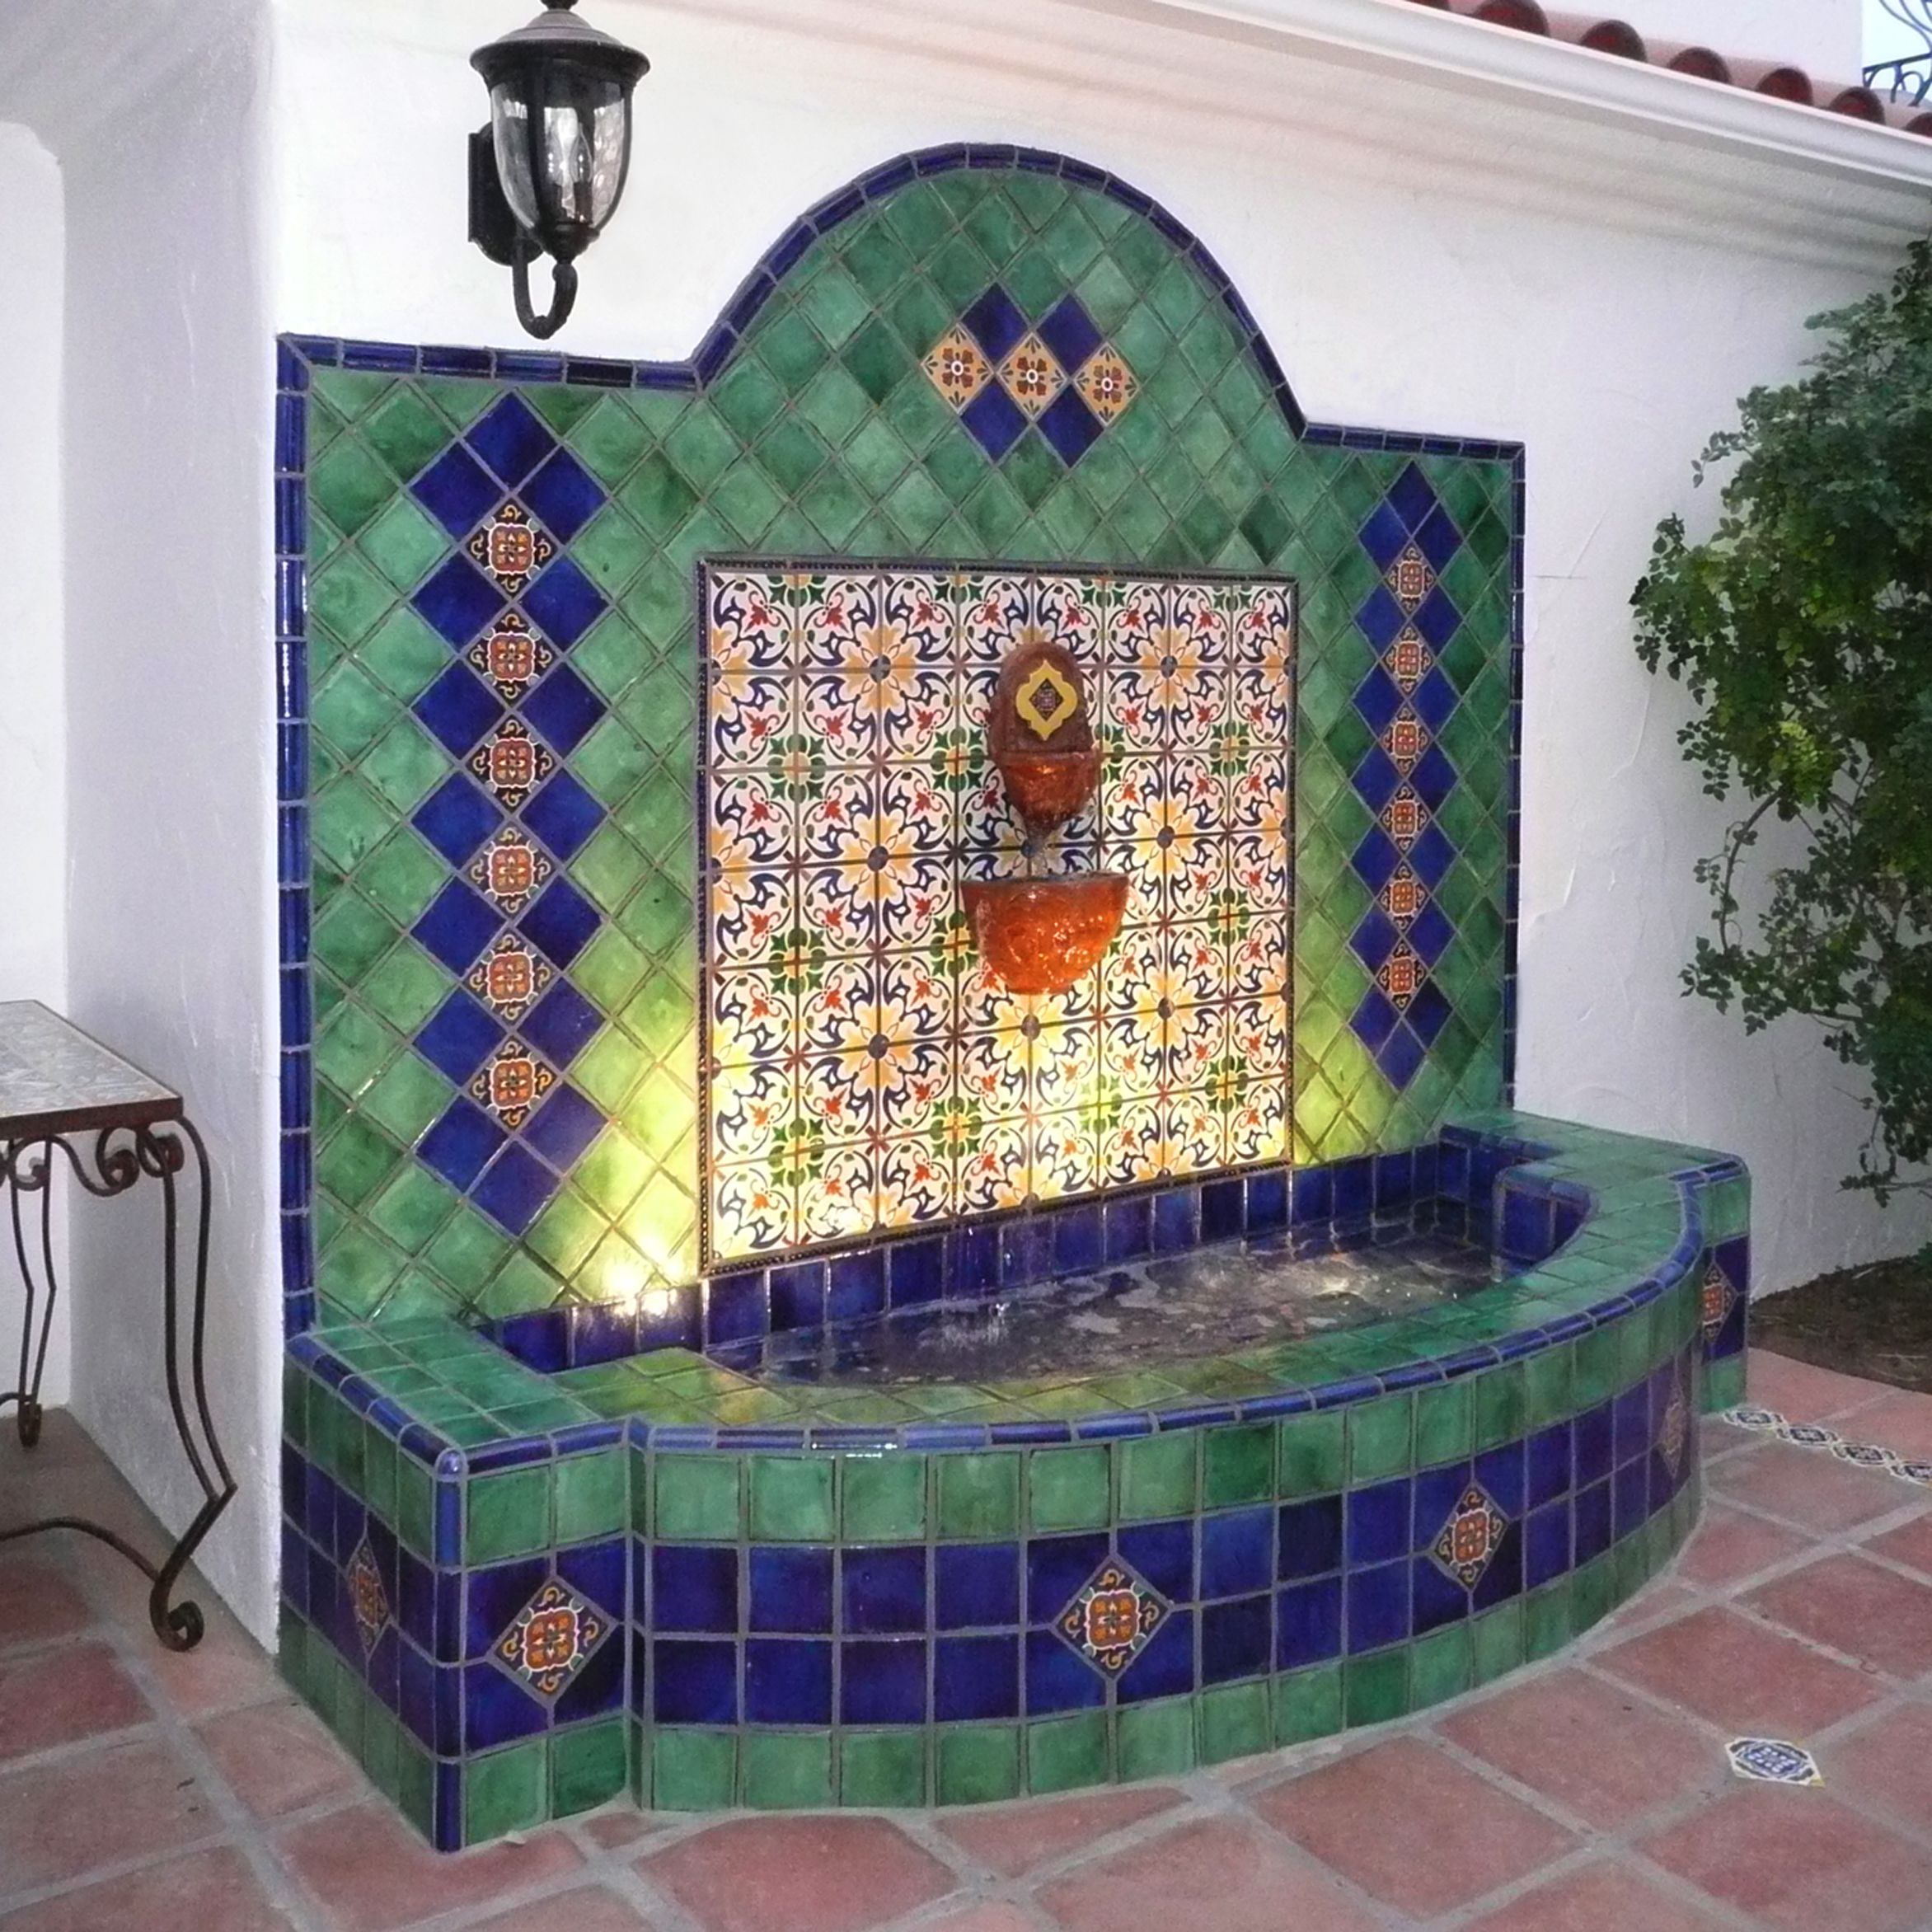 Mexican Wall Fountains Outdoor Image Pixelmari Com